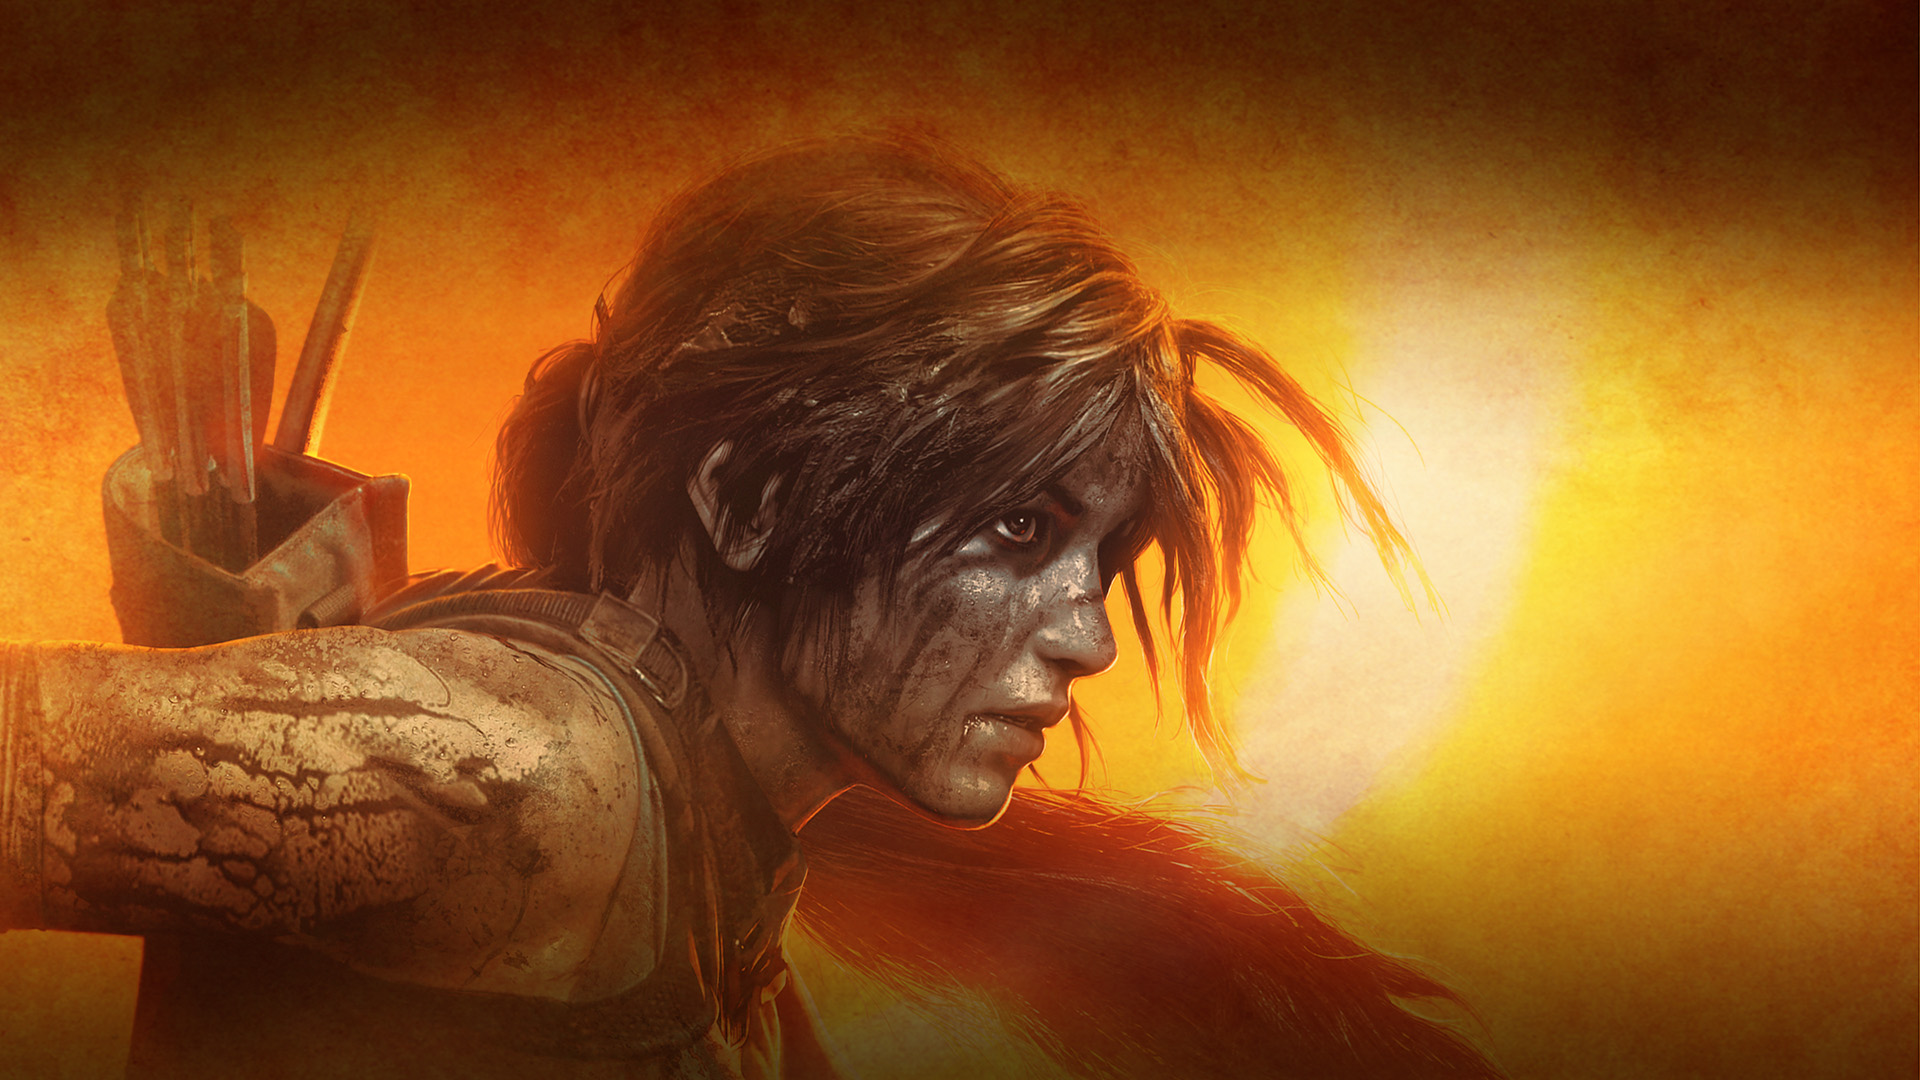 Sottr Wallpaper03 - Shadow Of The Tomb Raider , HD Wallpaper & Backgrounds